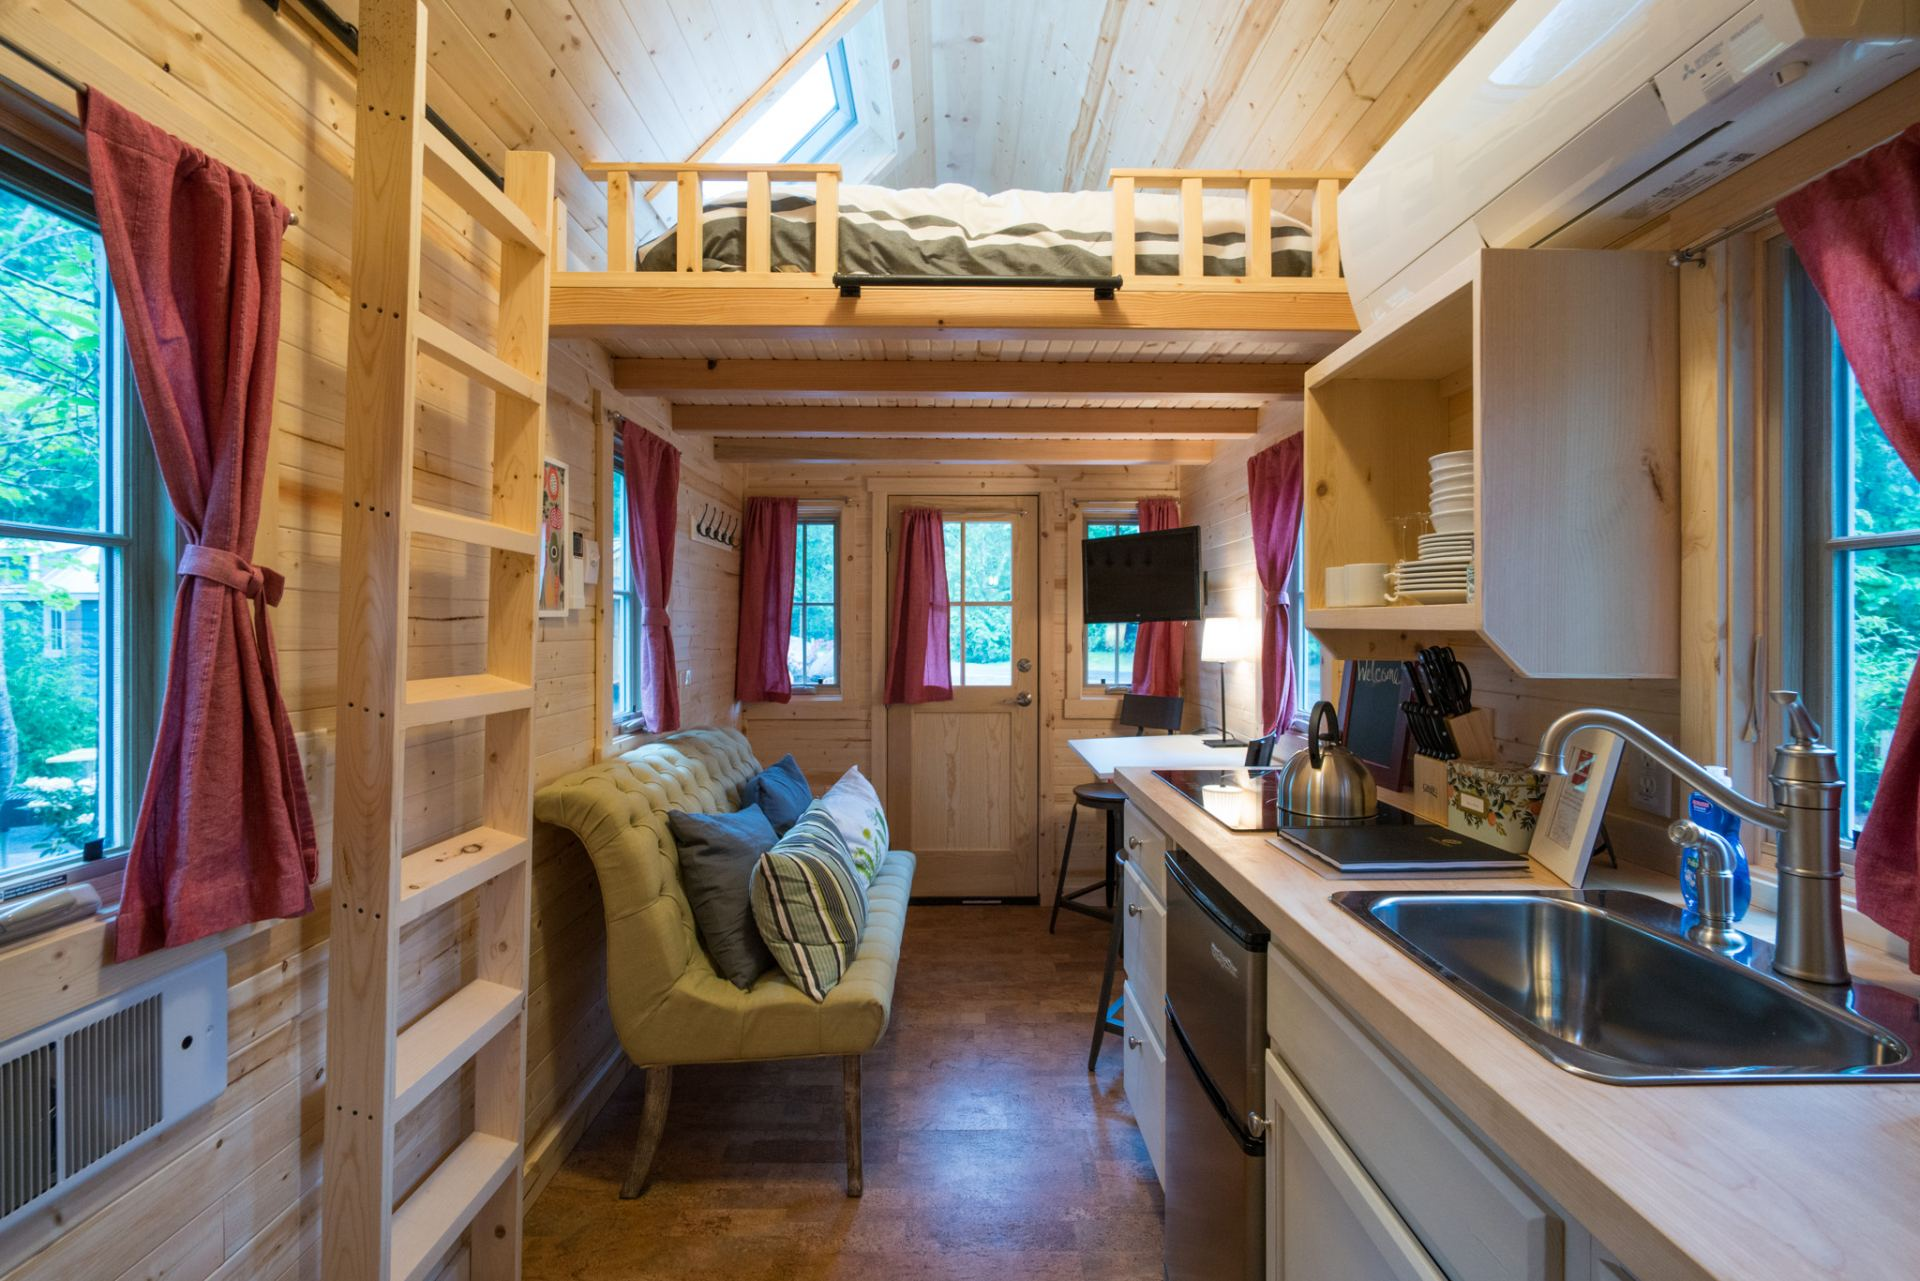 Wondrous Tiny House Giant Journey A Blog About Living Small And Traveling Largest Home Design Picture Inspirations Pitcheantrous